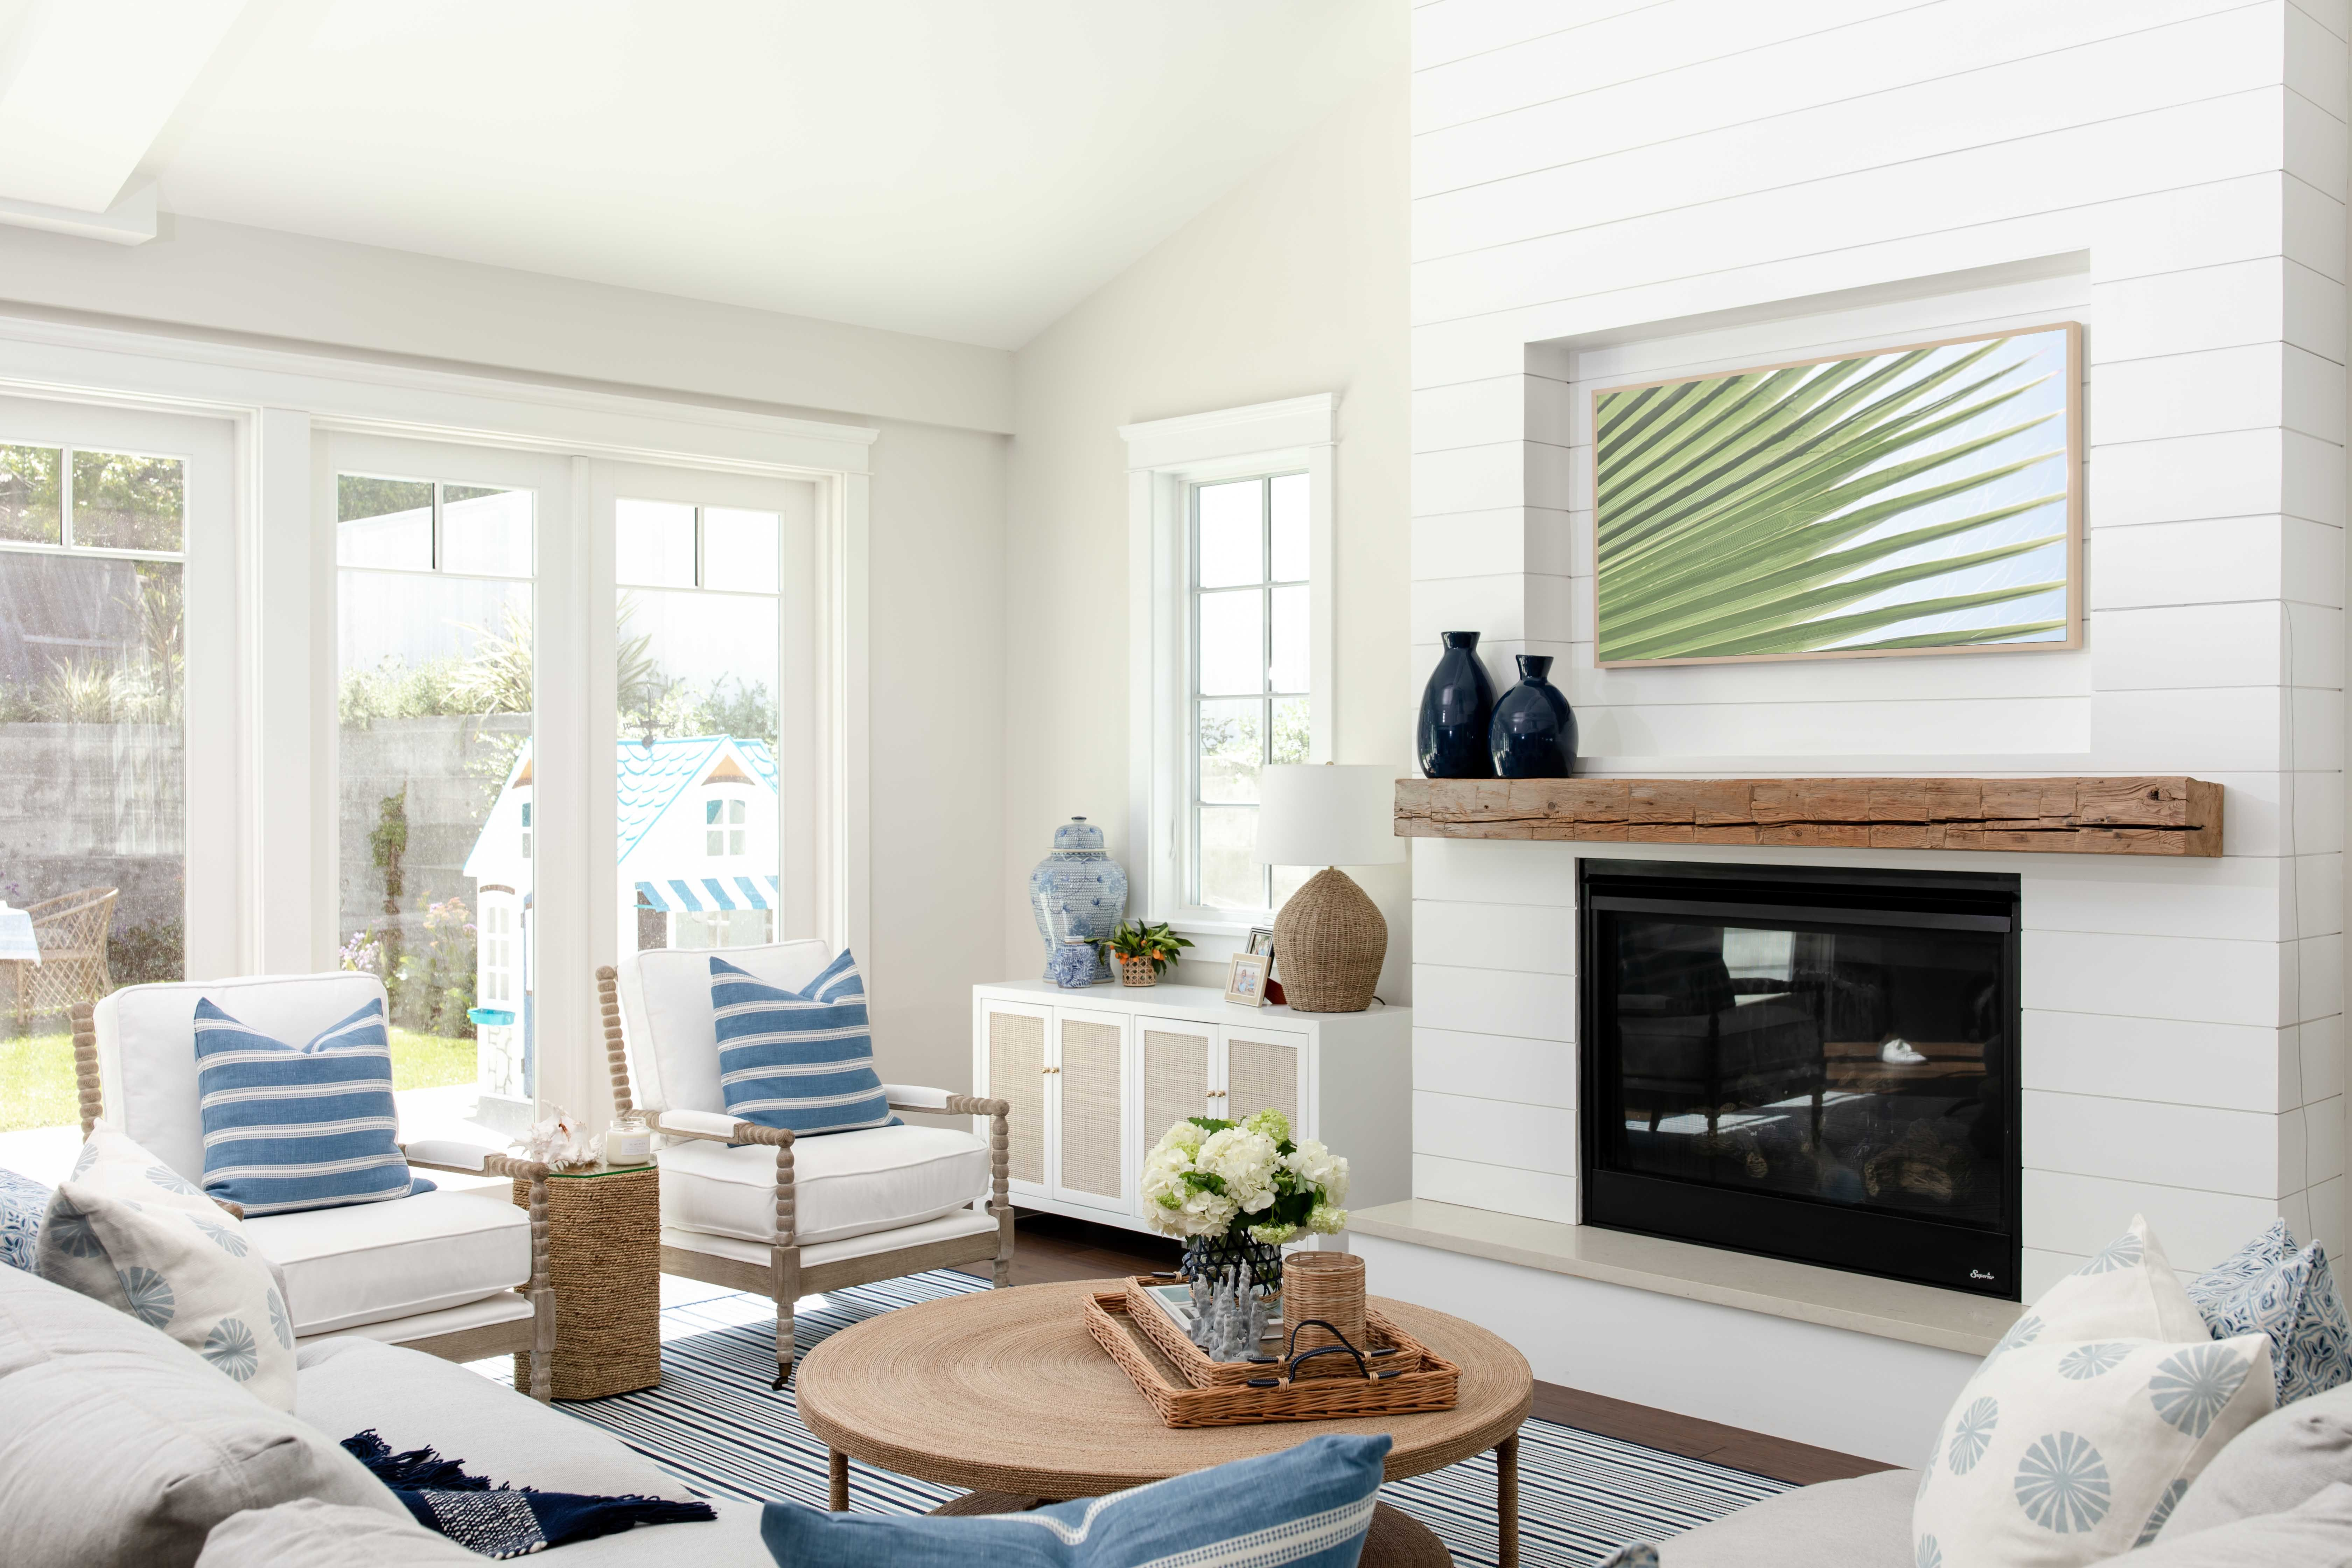 Meg Young's Home Brings Cape Cod Style to California